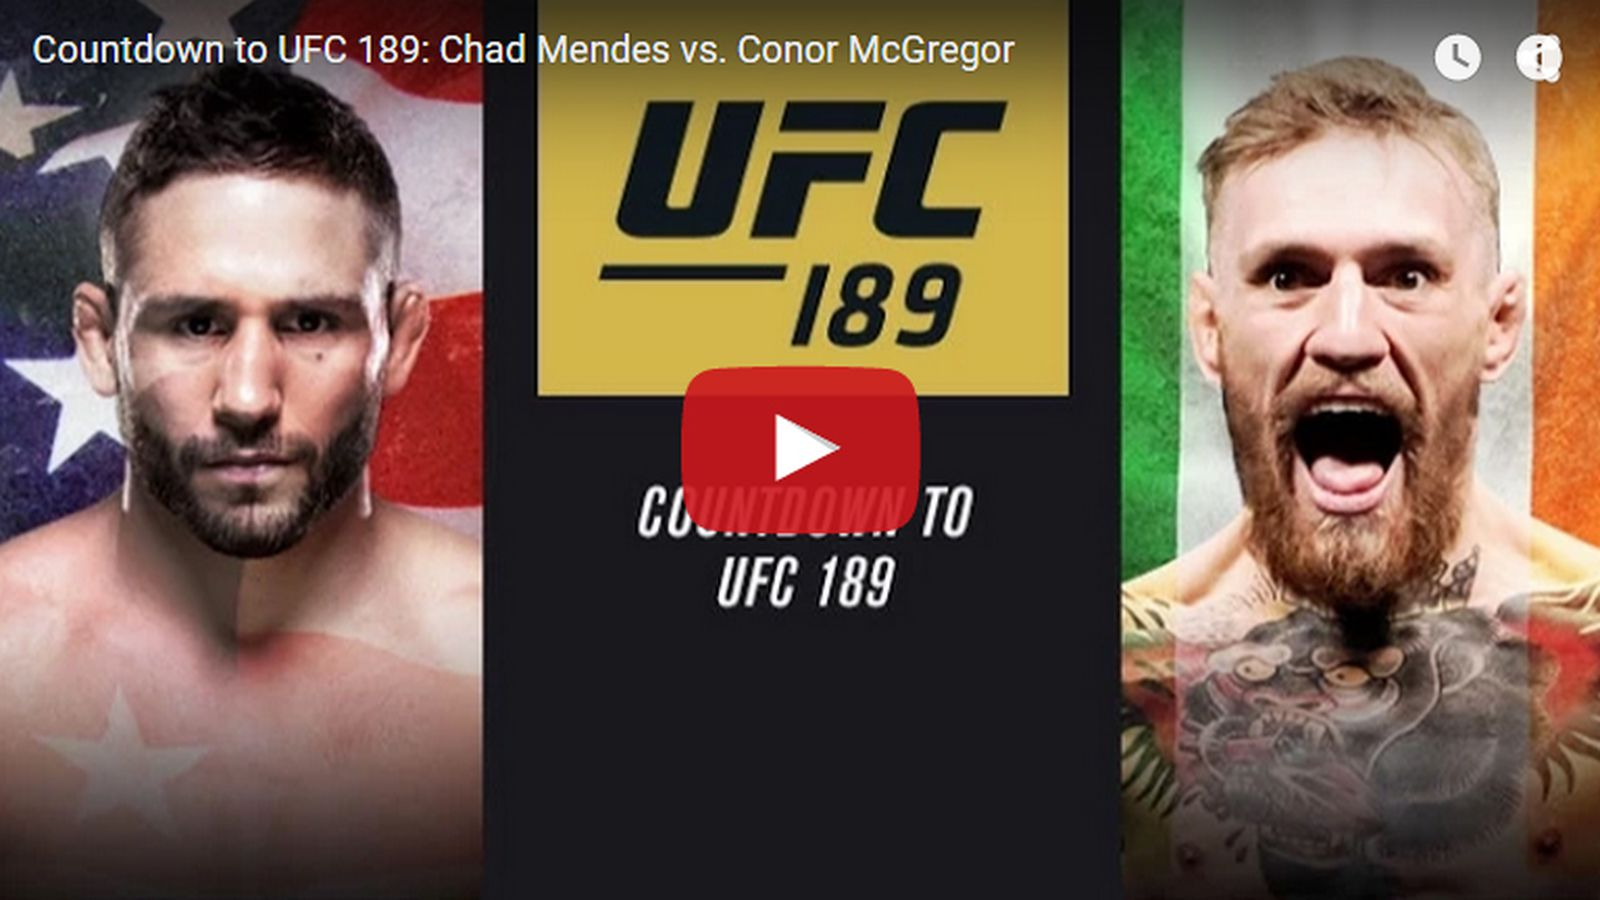 Countdown' to UFC 189 full vid...